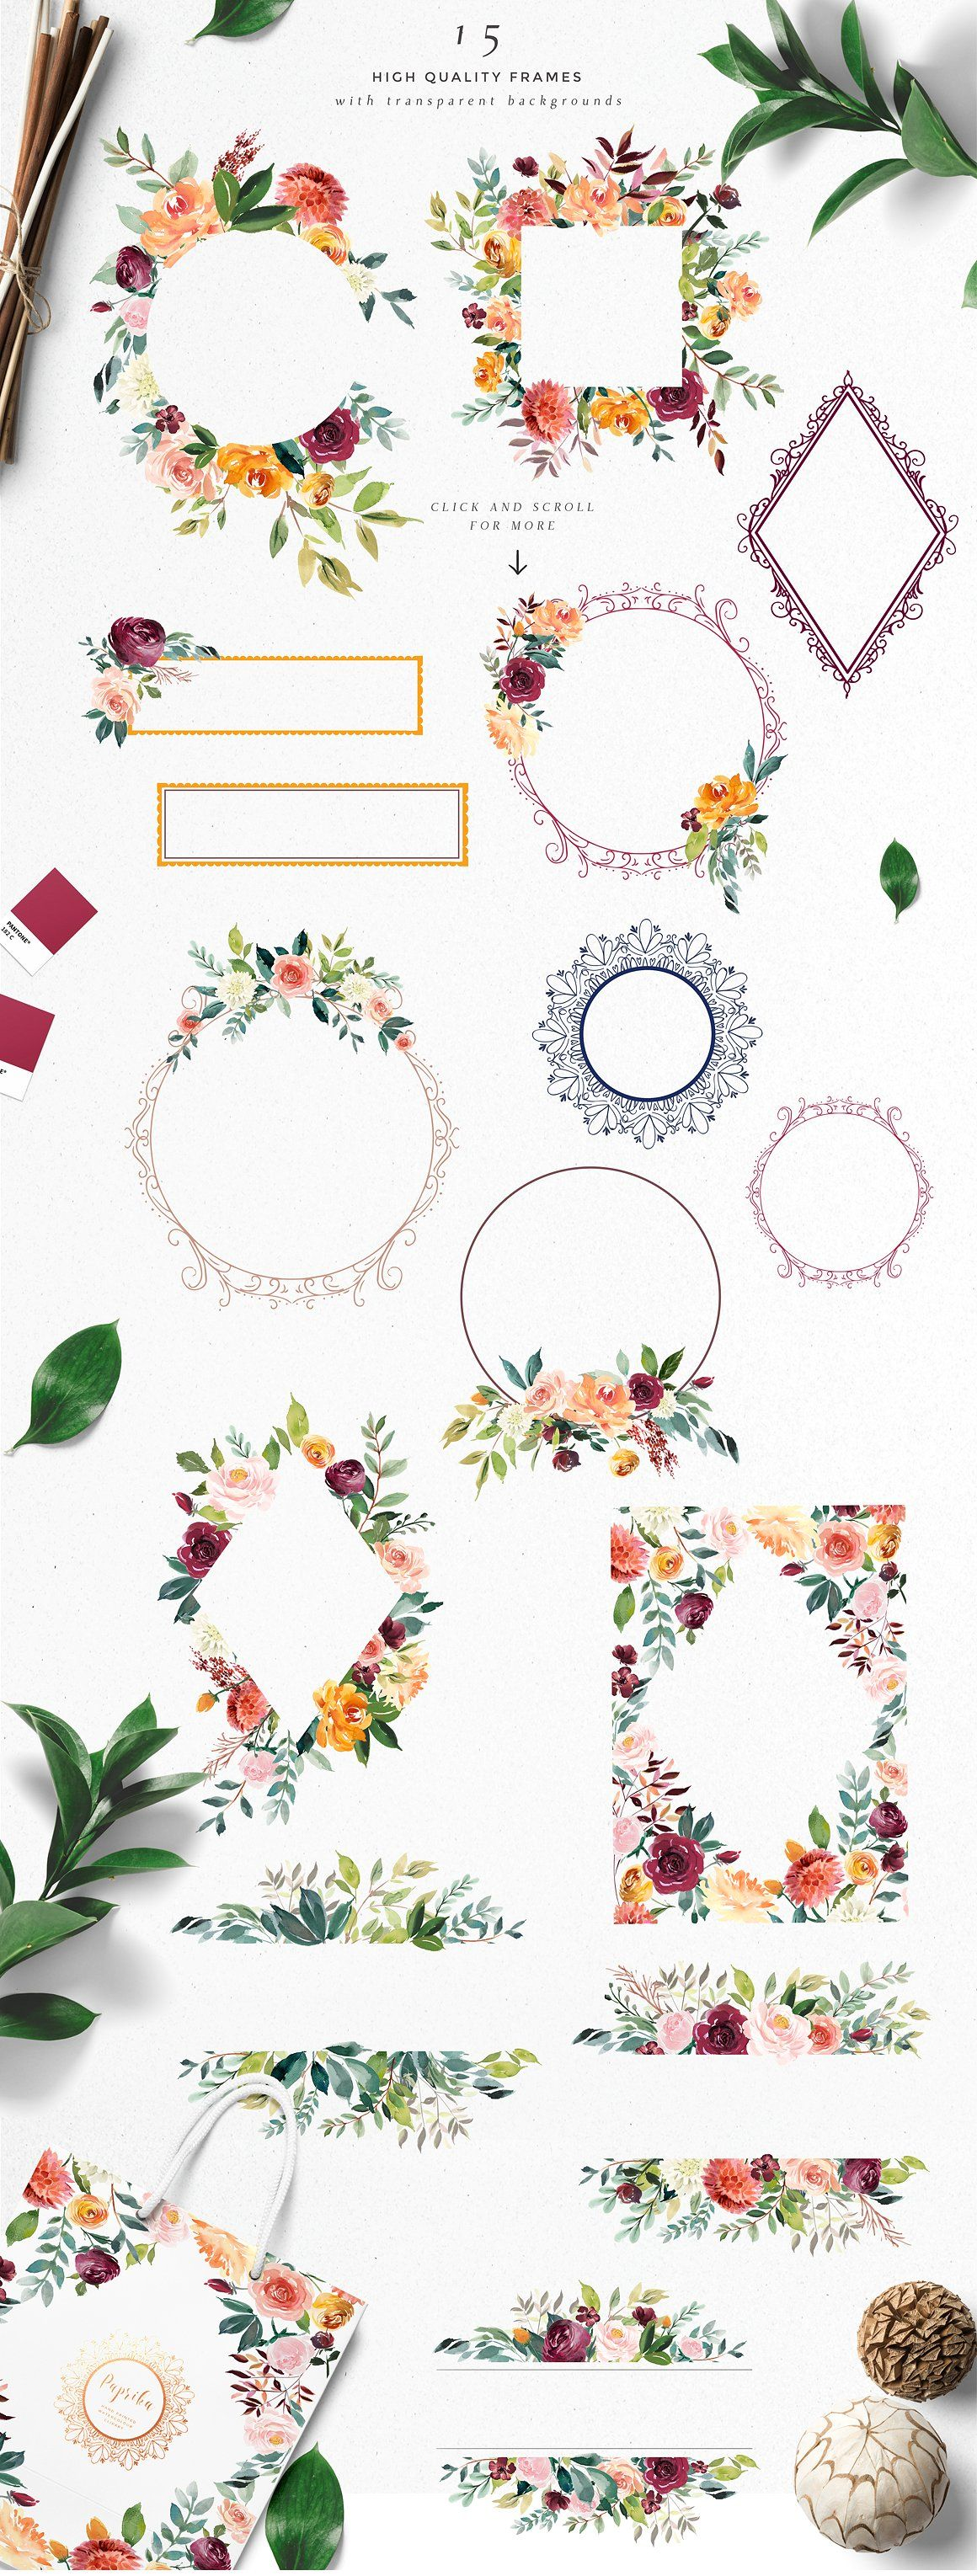 Watercolor Flower Clipart Paprika By Twigs And Twine On Creativemarket